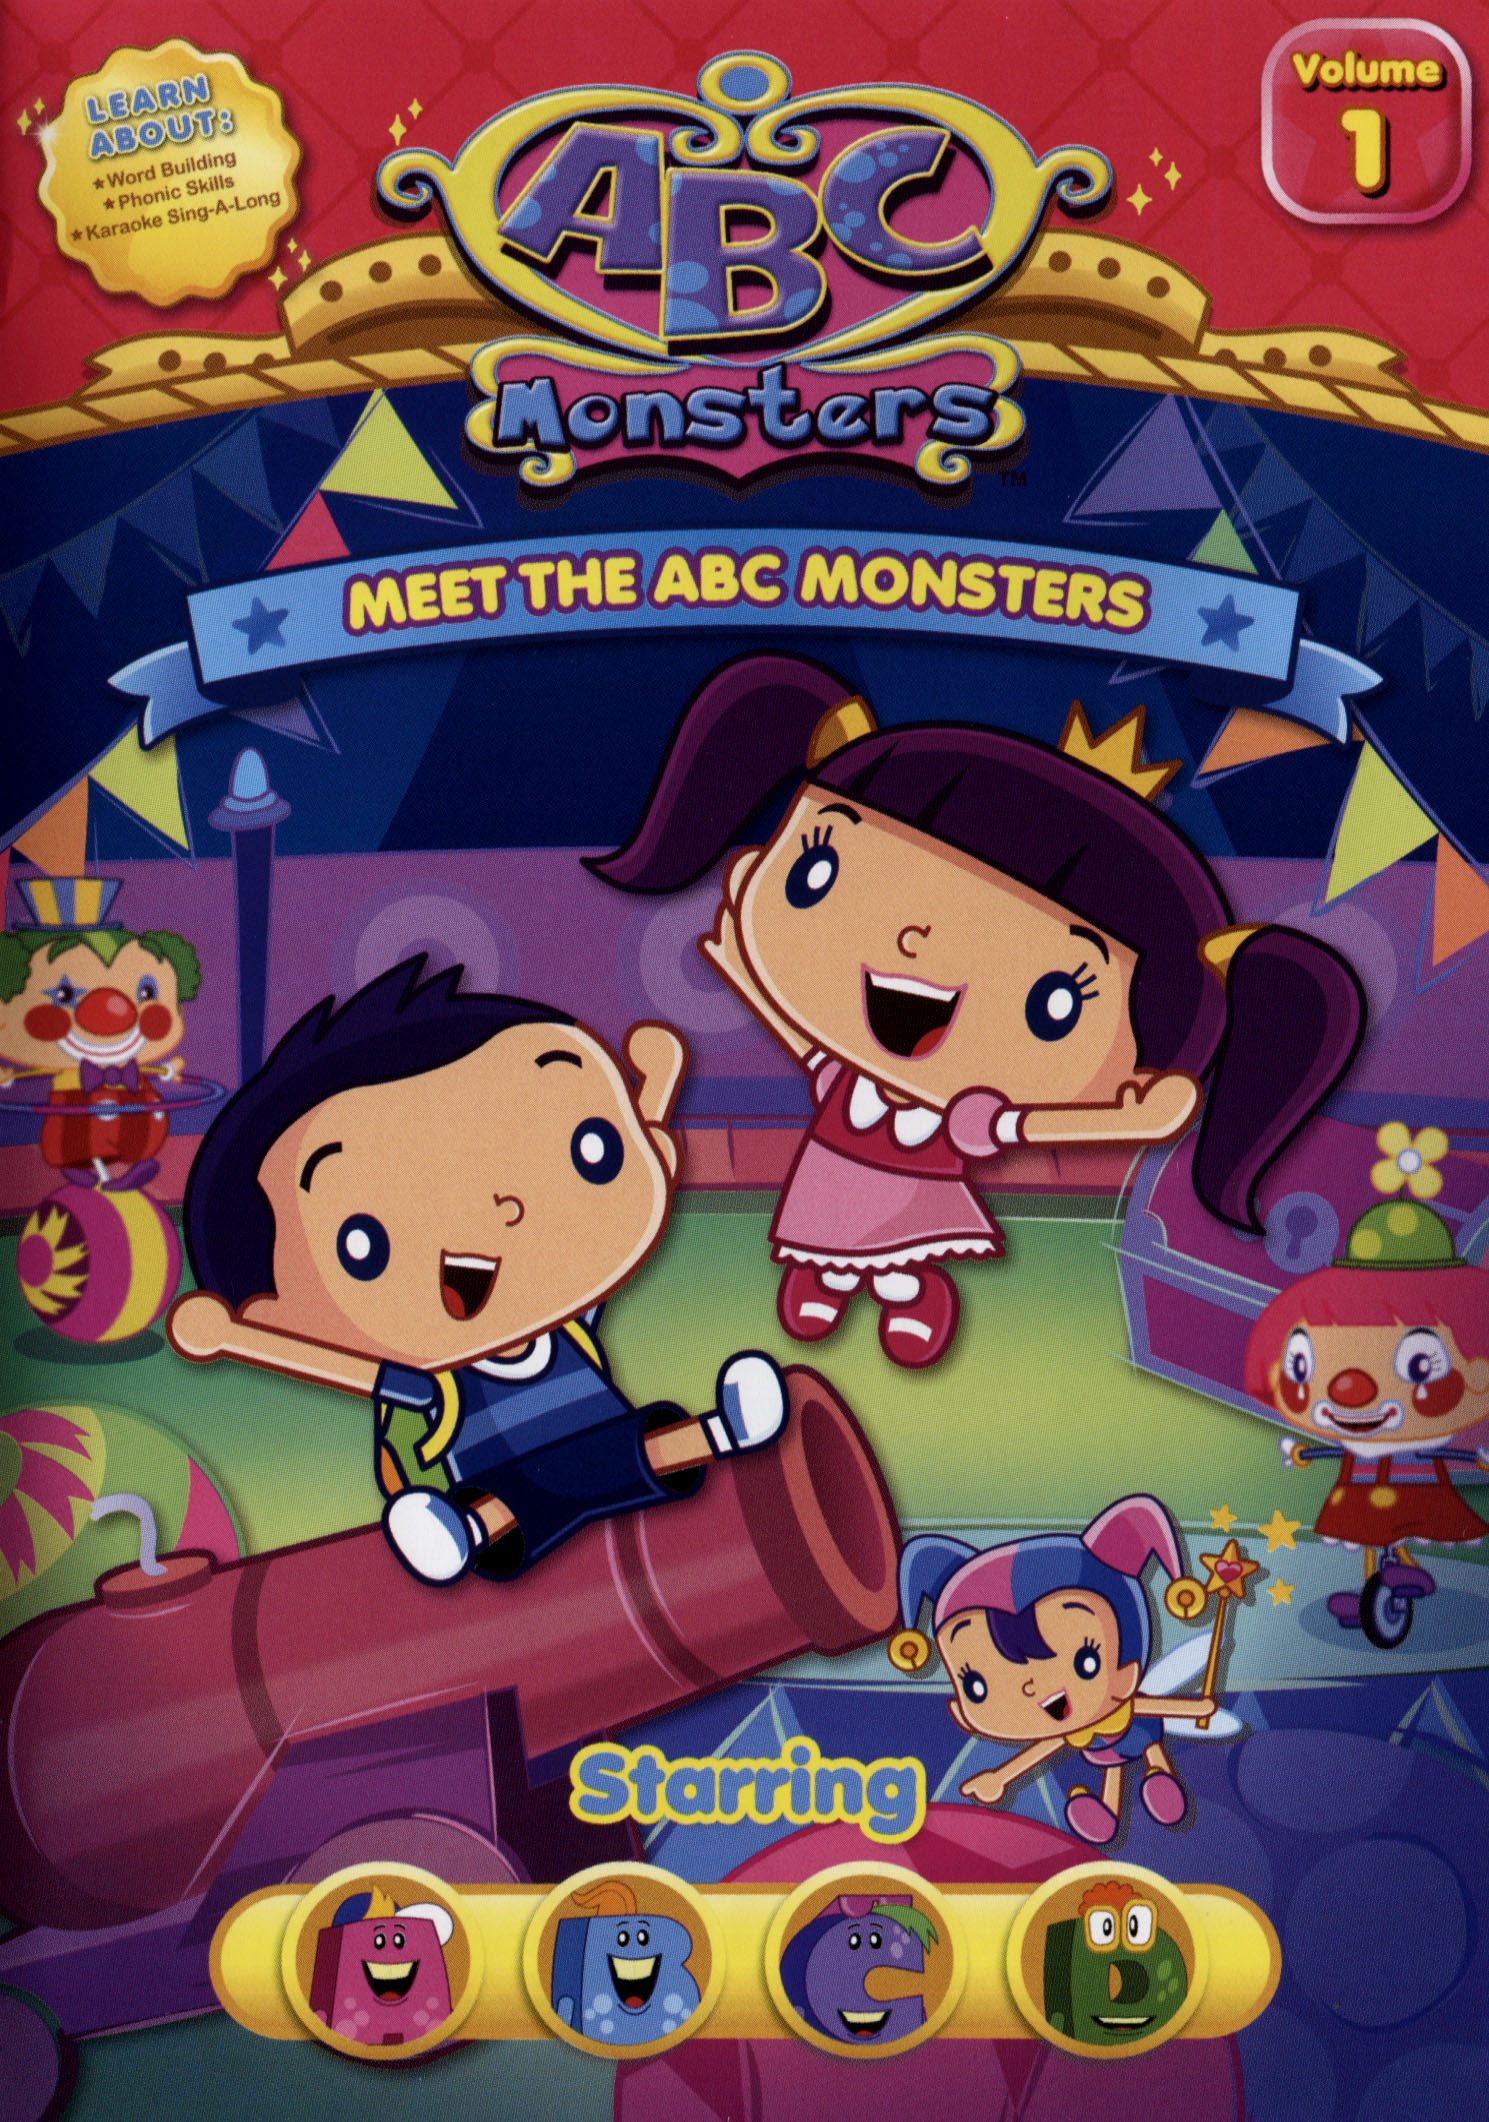 ABC Monsters: Meet the ABC Monsters - Starring ABCD